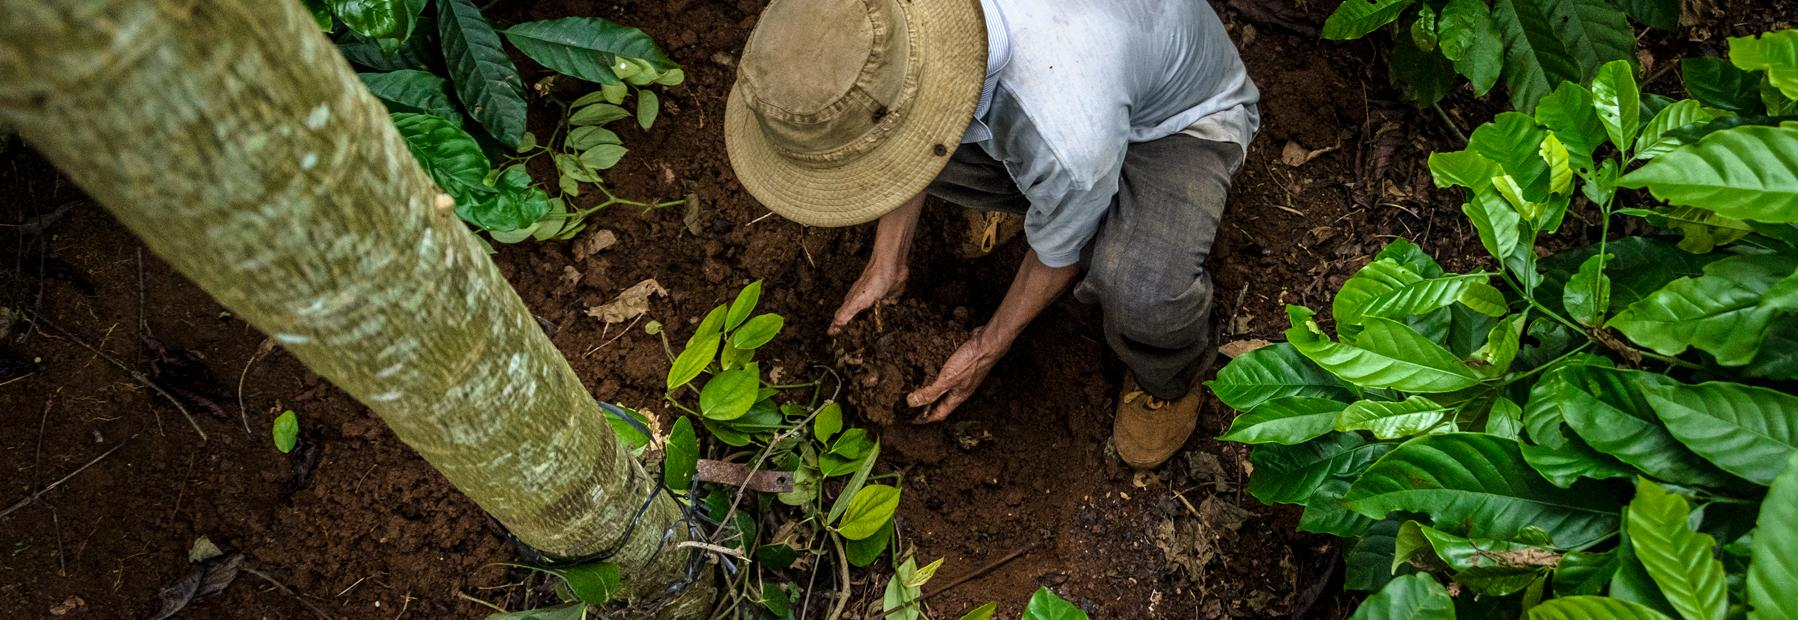 Farmer with hands in soil © Carlos Rubio and Global Coffee Platform